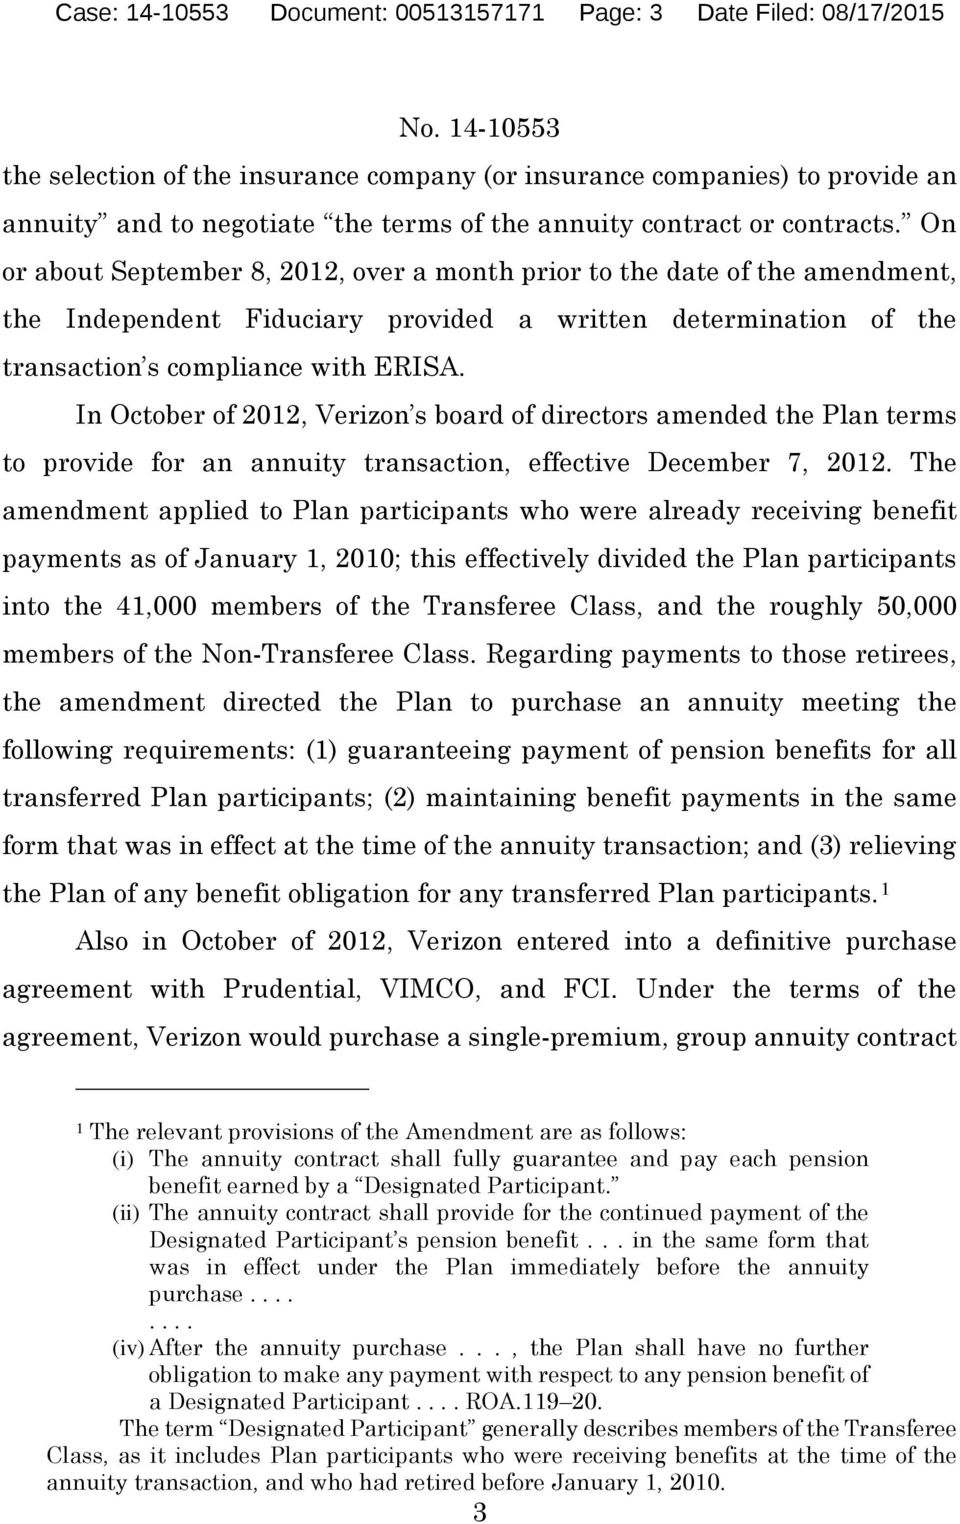 On or about September 8, 2012, over a month prior to the date of the amendment, the Independent Fiduciary provided a written determination of the transaction s compliance with ERISA.